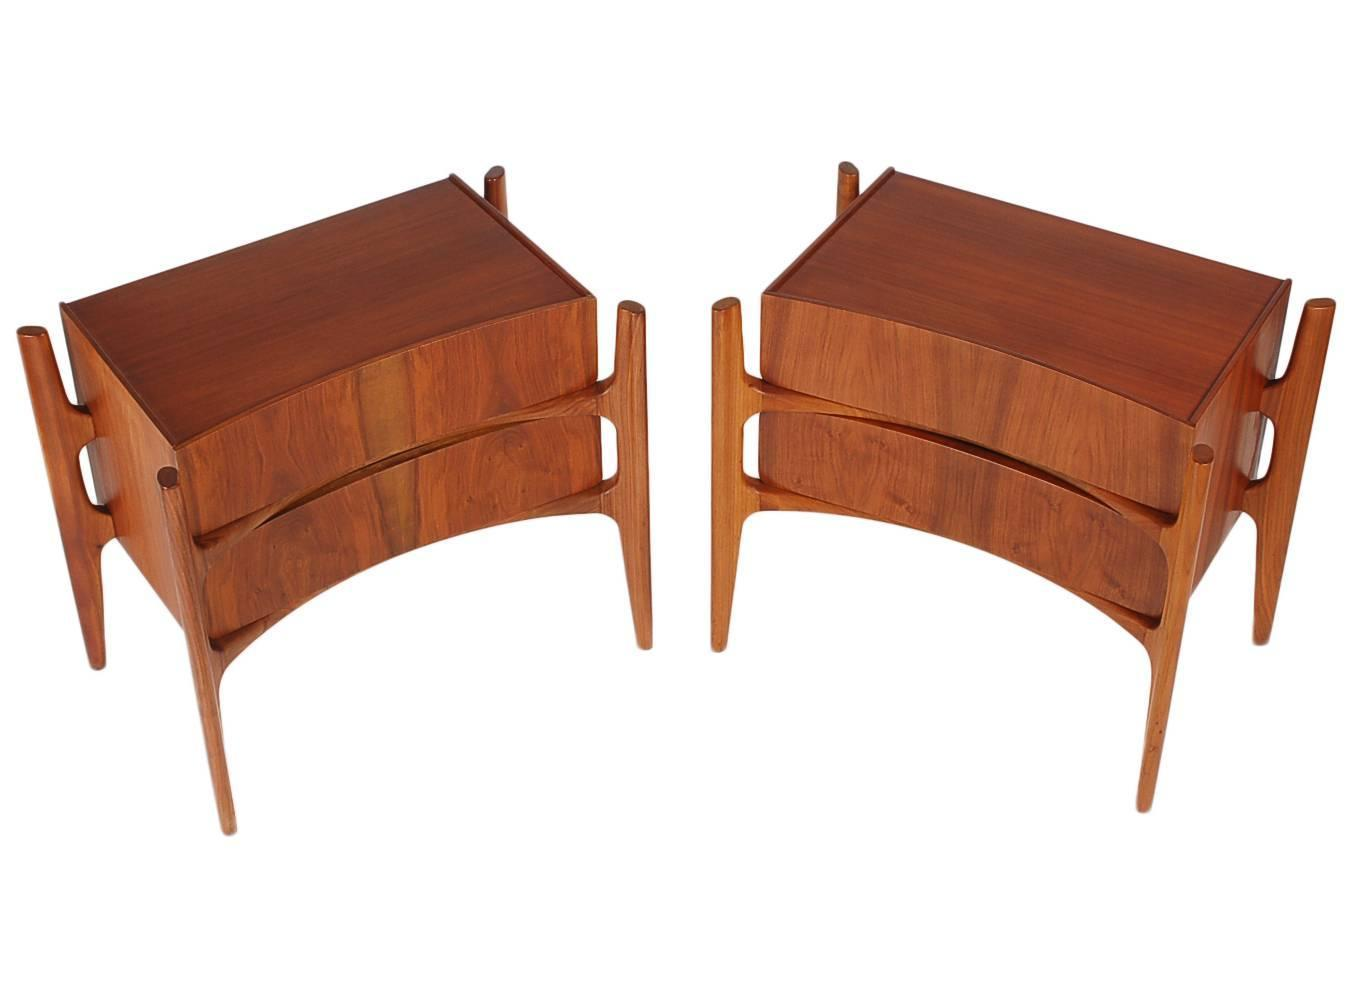 Sir edmond spence mid century sculptural nightstands or for Z furniture philadelphia